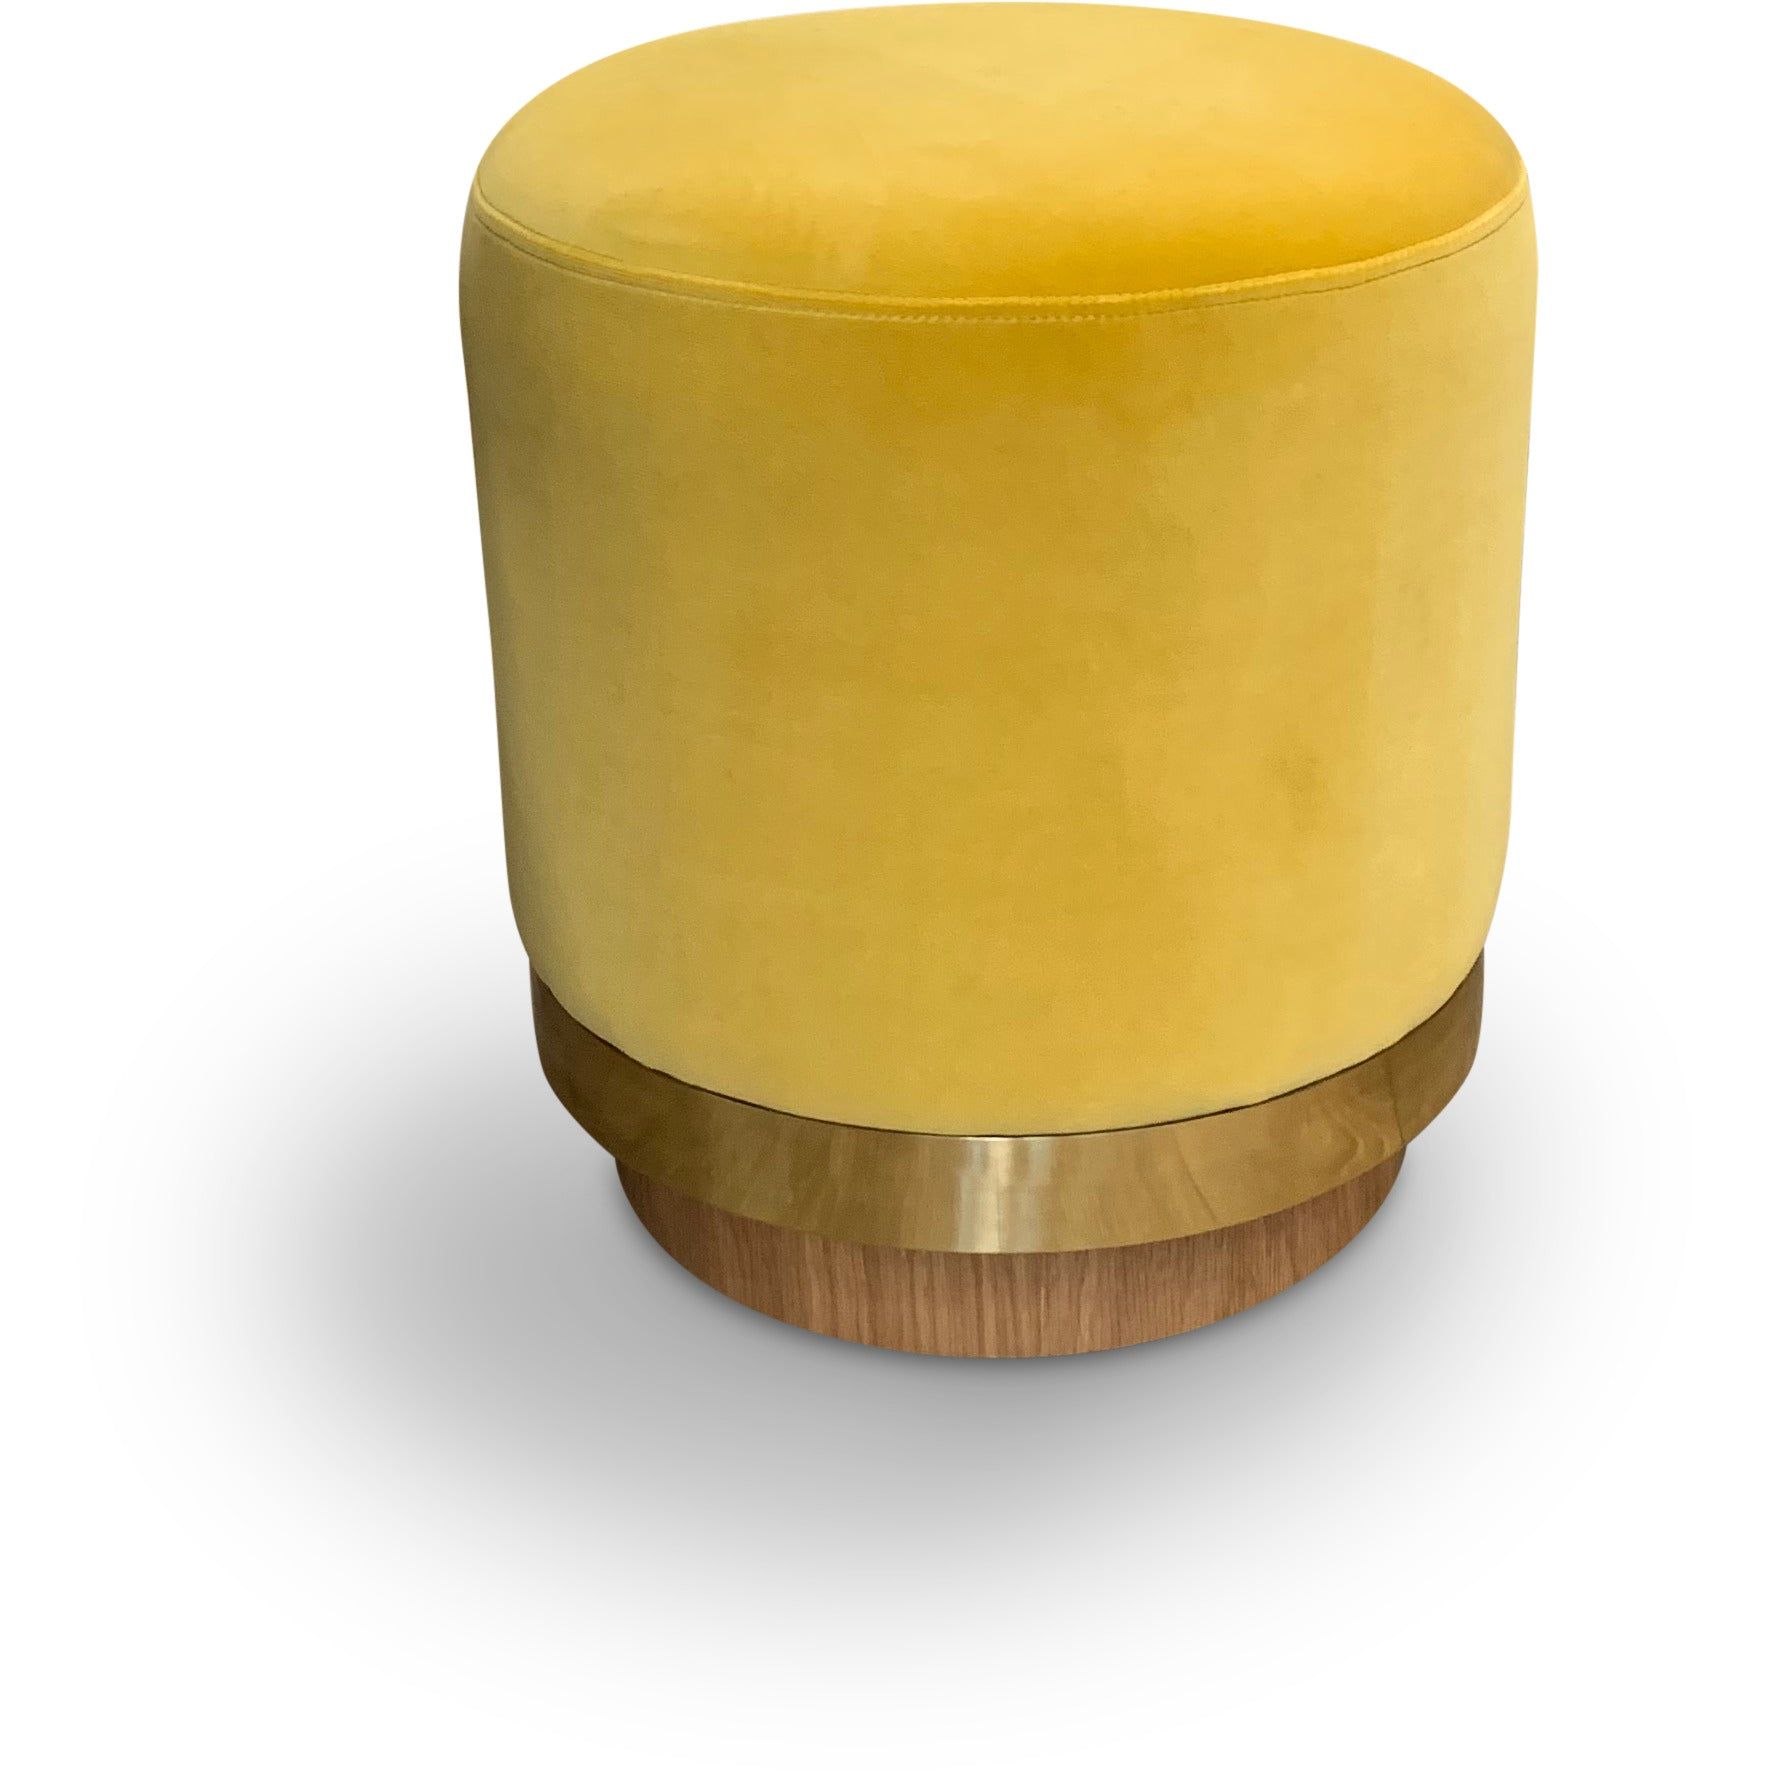 "Velvet Stool with Gold and Wood Base 14"" dia. x 15.5"""